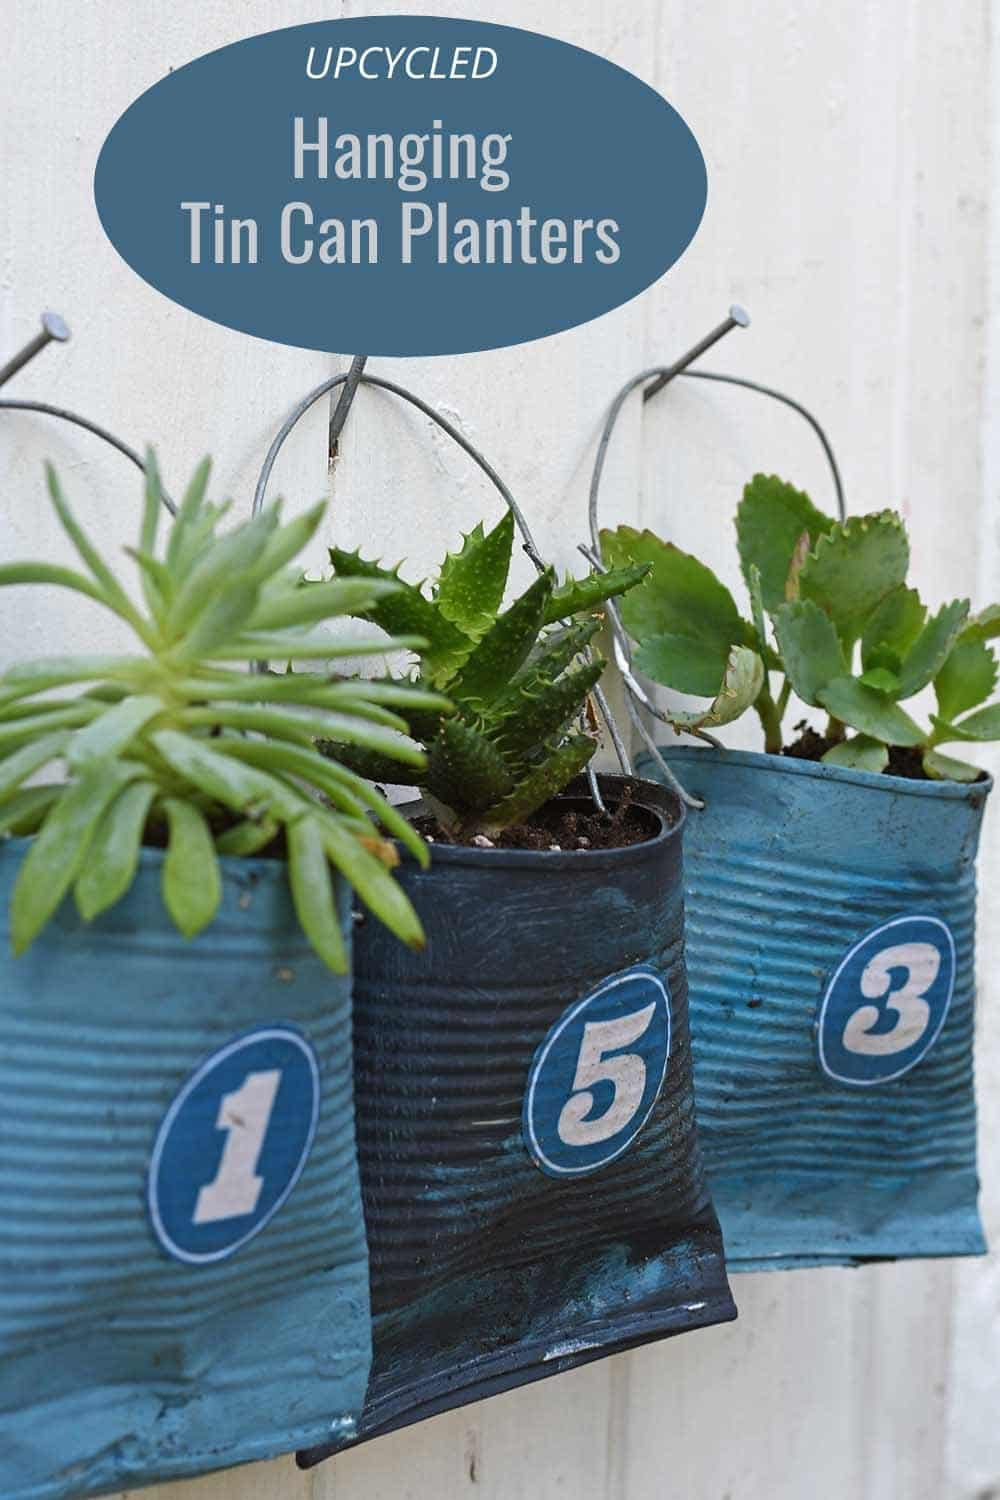 Upcycled hanging succulent planters